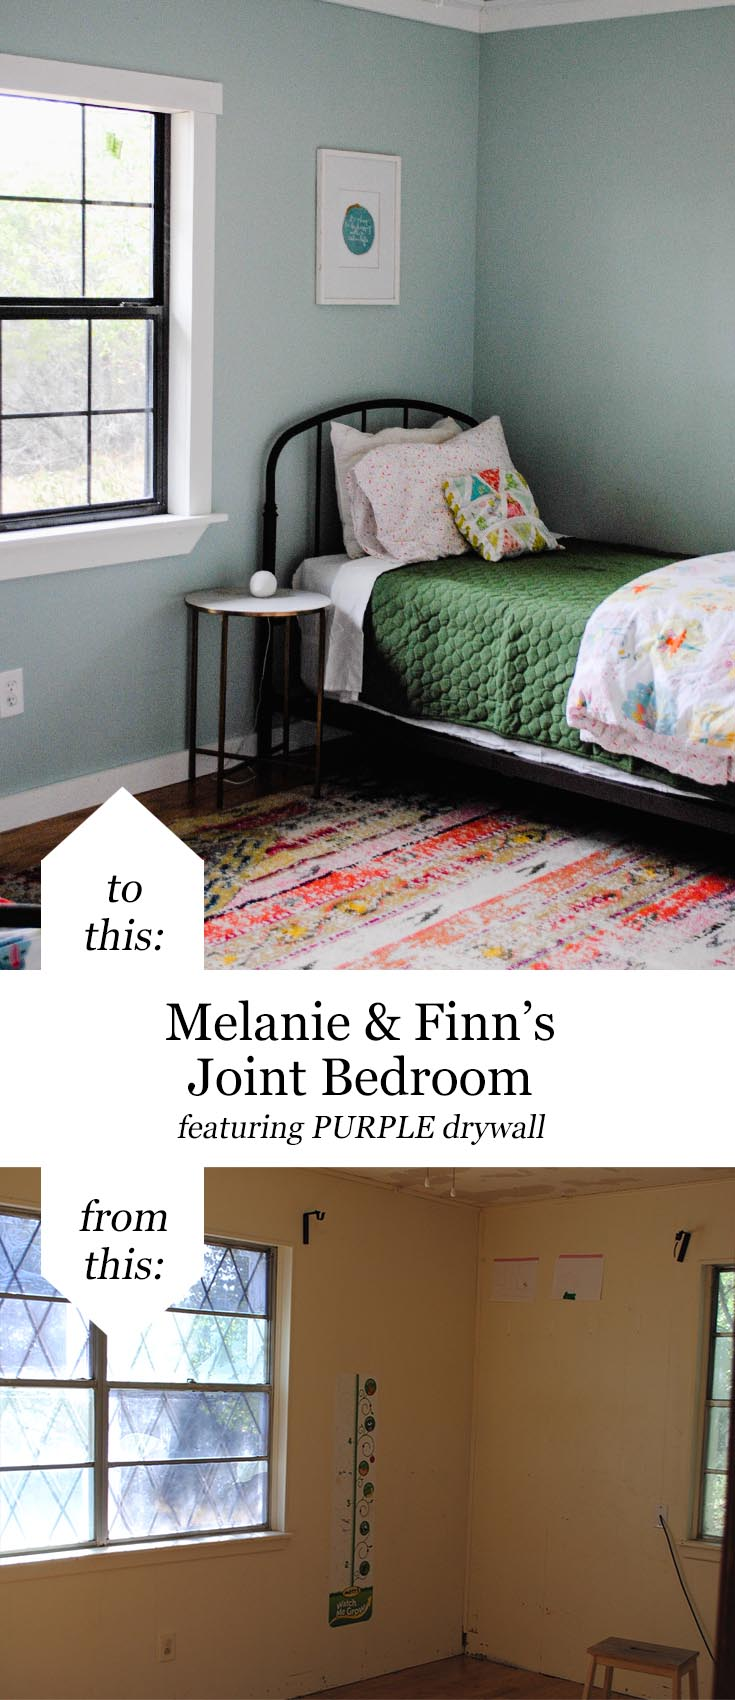 San Antonio lifestyle blogger, Cris Stone, shares before and afters of her children's joint bedroom featuring drywall from #AskForPURPLE! #ad #IC